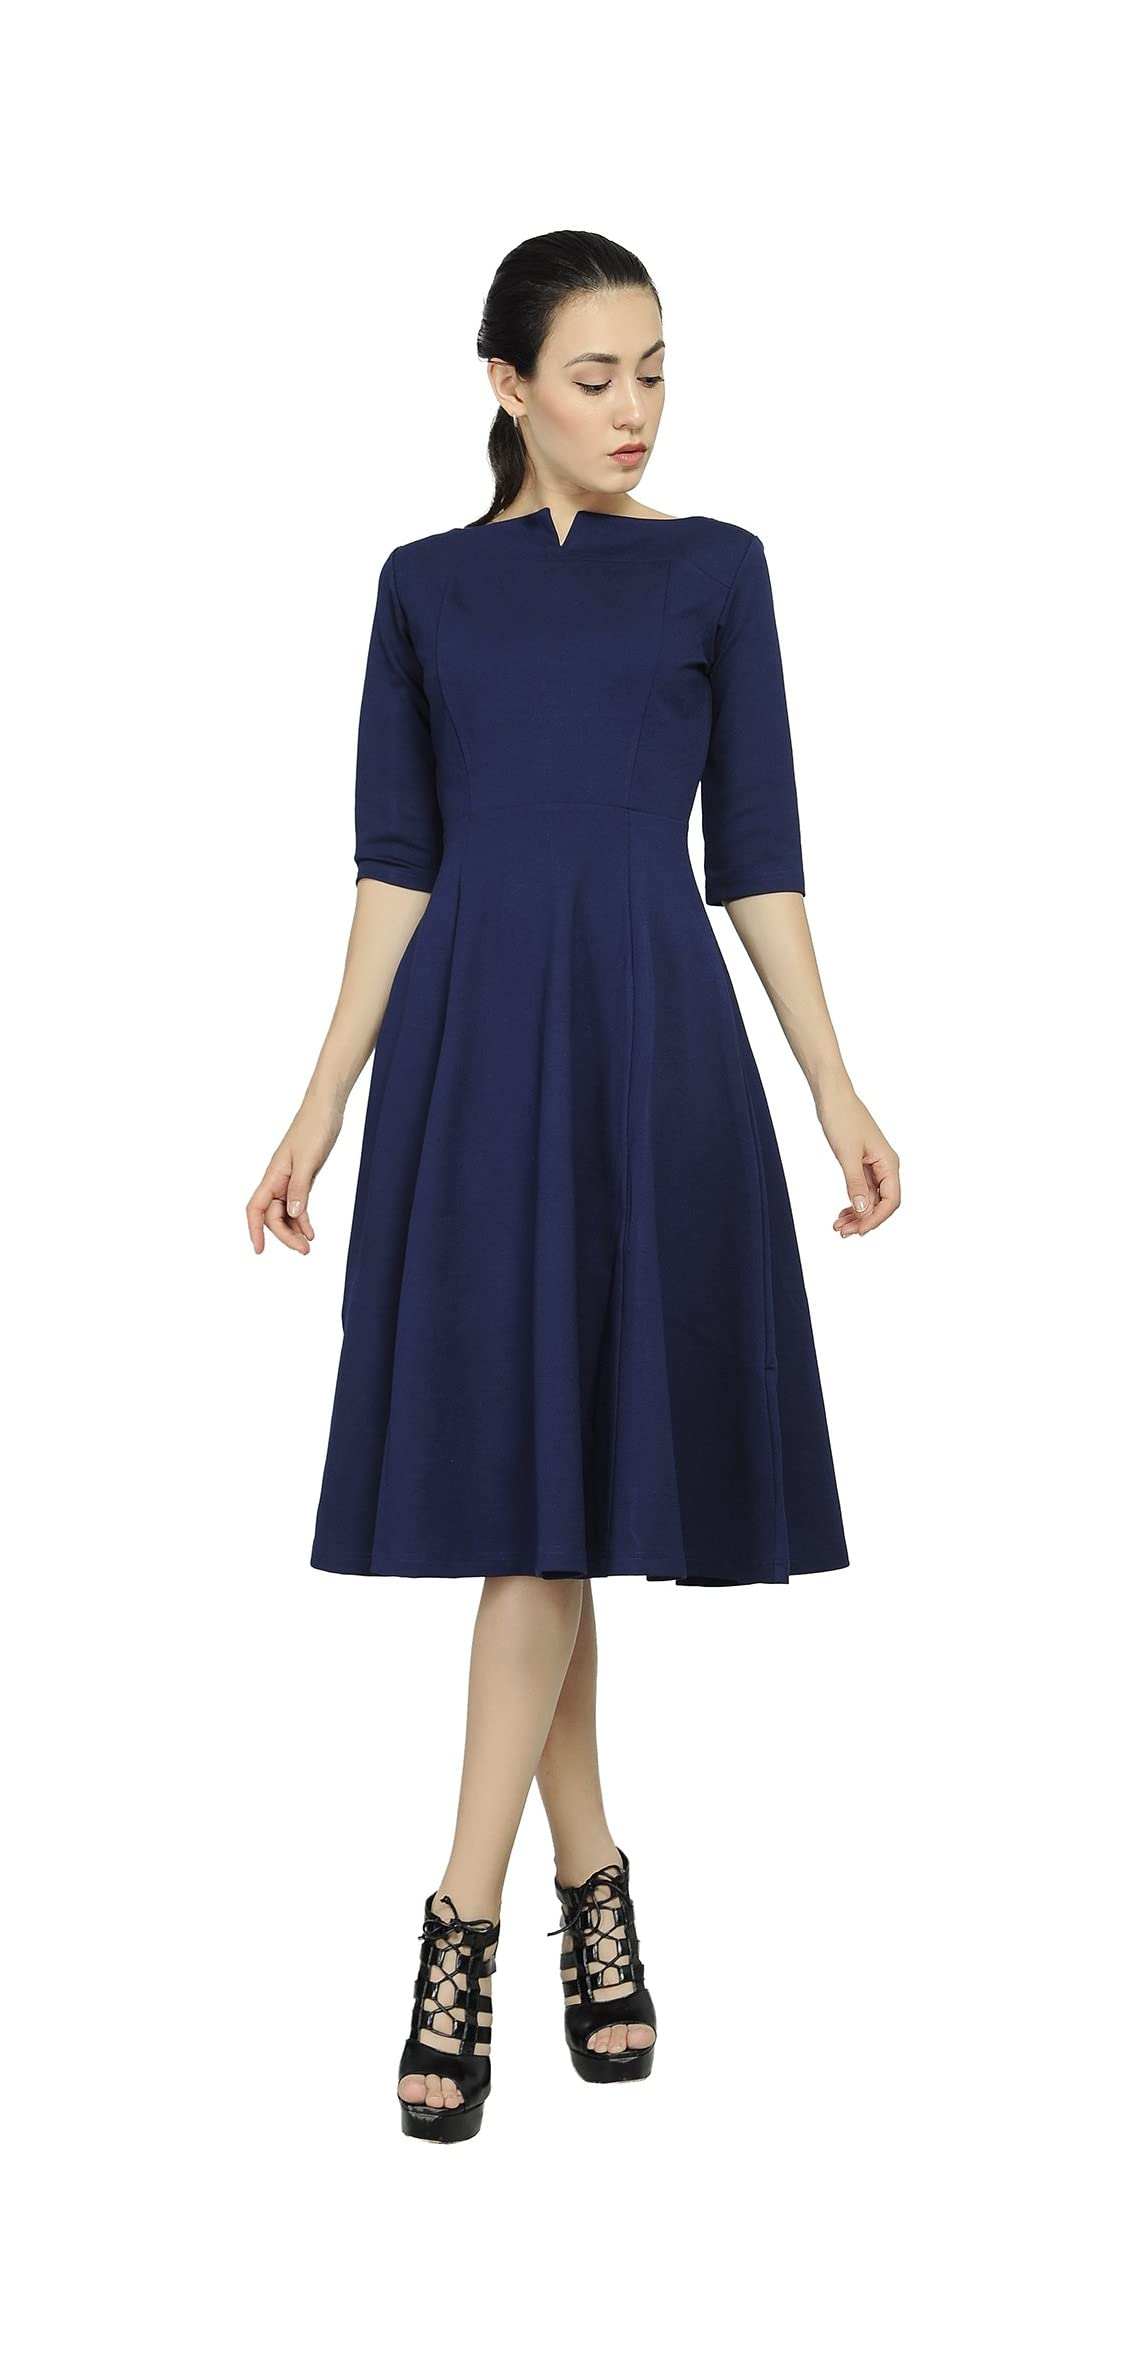 Women's Fit Flare Tea Midi Dress For Office Business